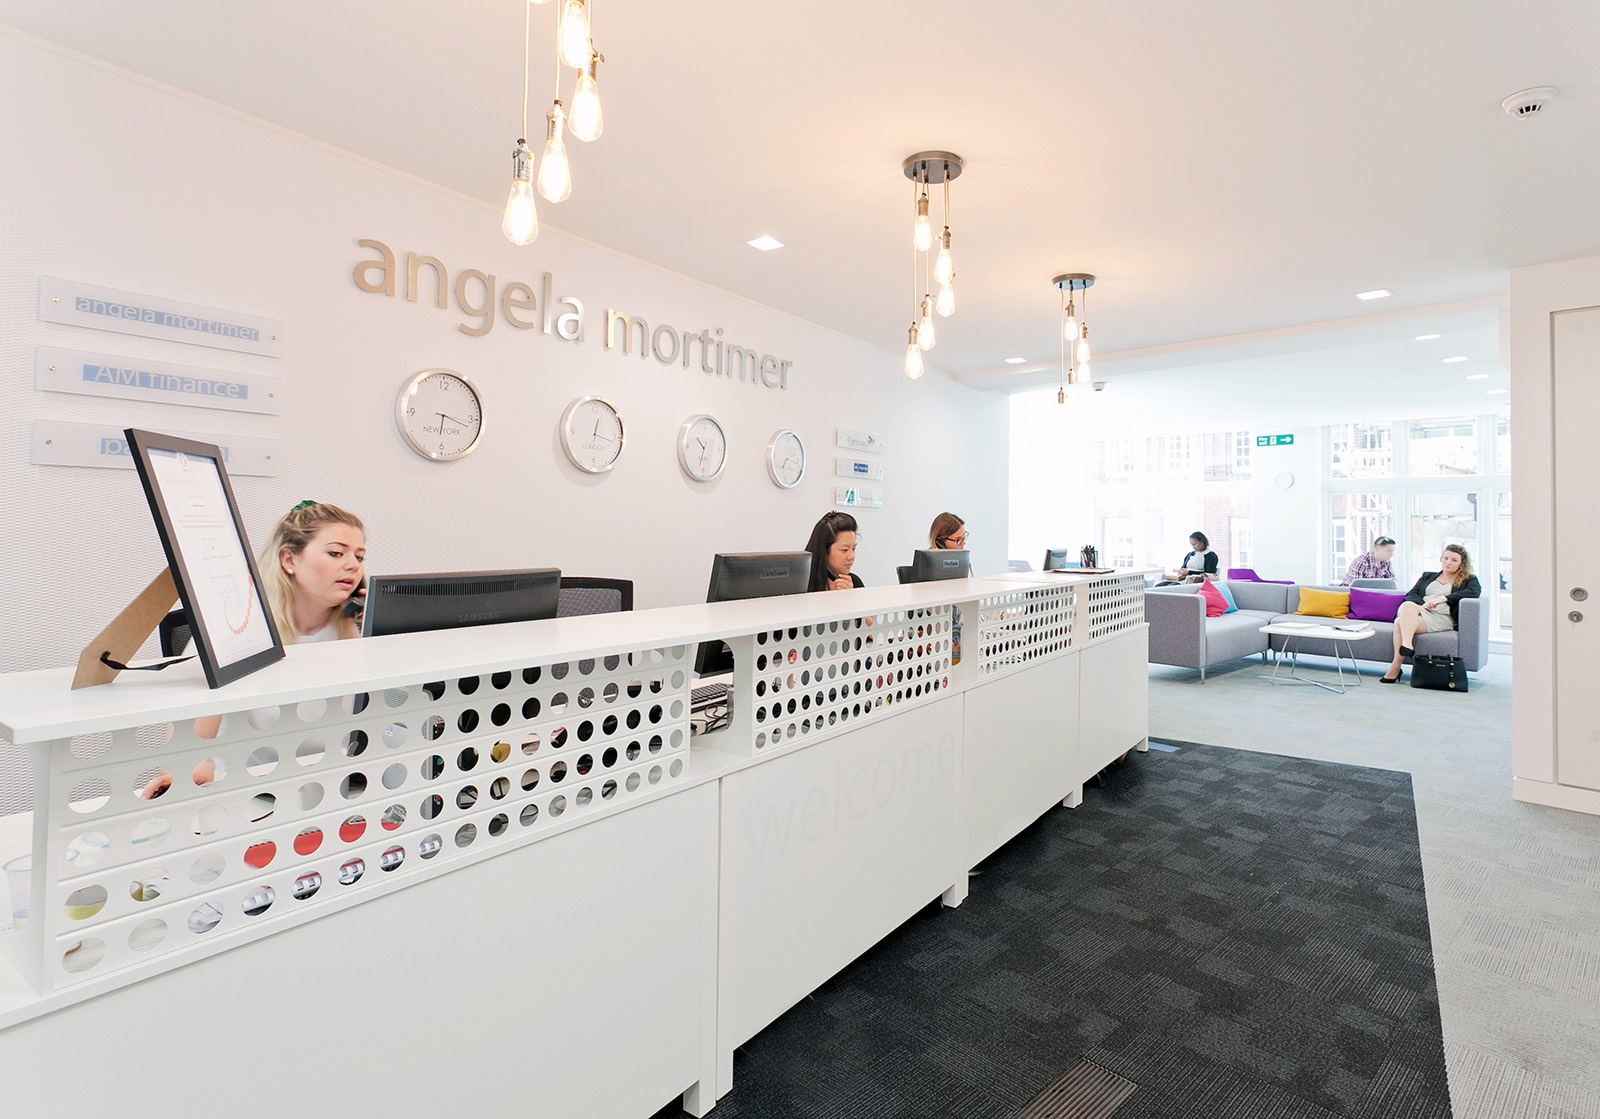 Angela-Mortimer-office-1